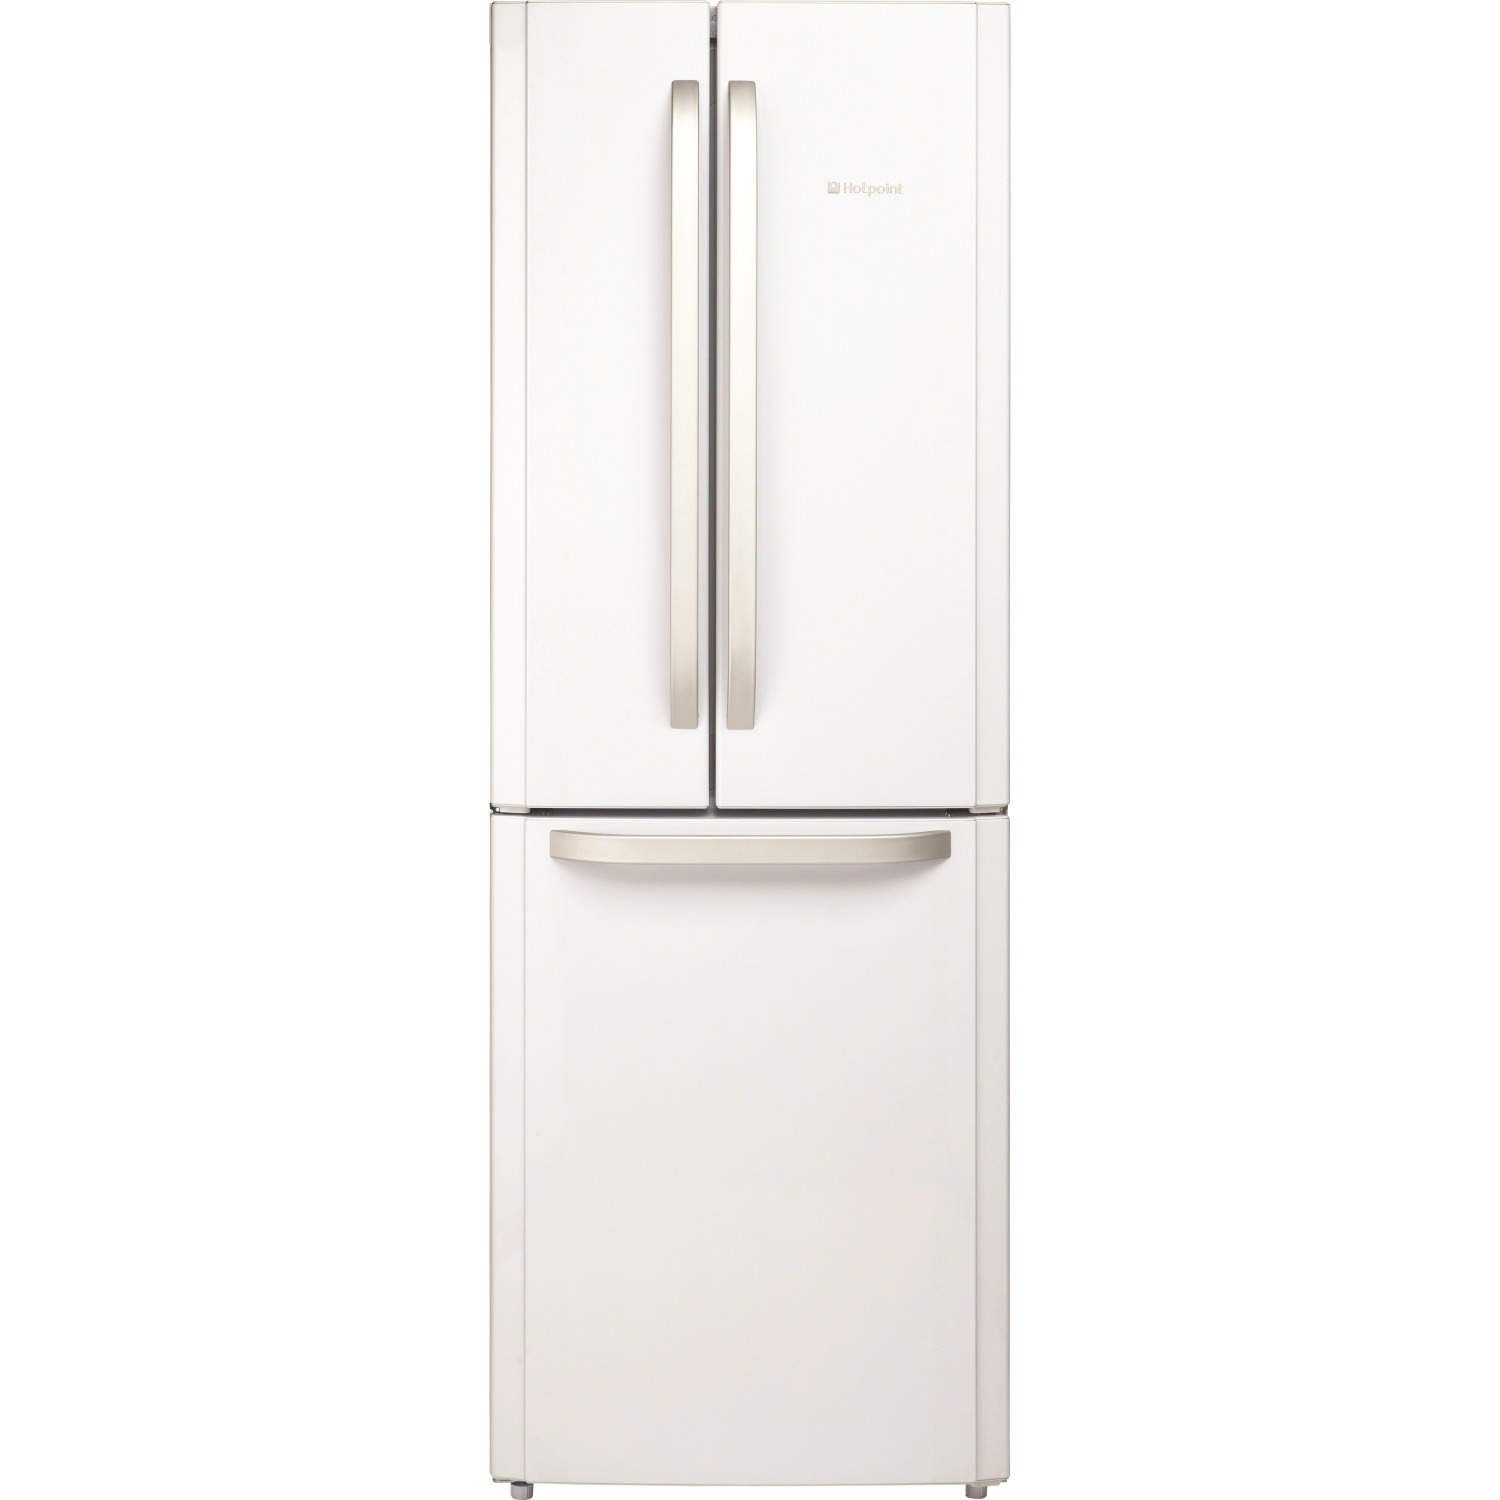 Hotpoint FFU3DW Trio Freestanding Fridge Freezer With French-style Fridge  Doors White: Amazon.co.uk: Large Appliances